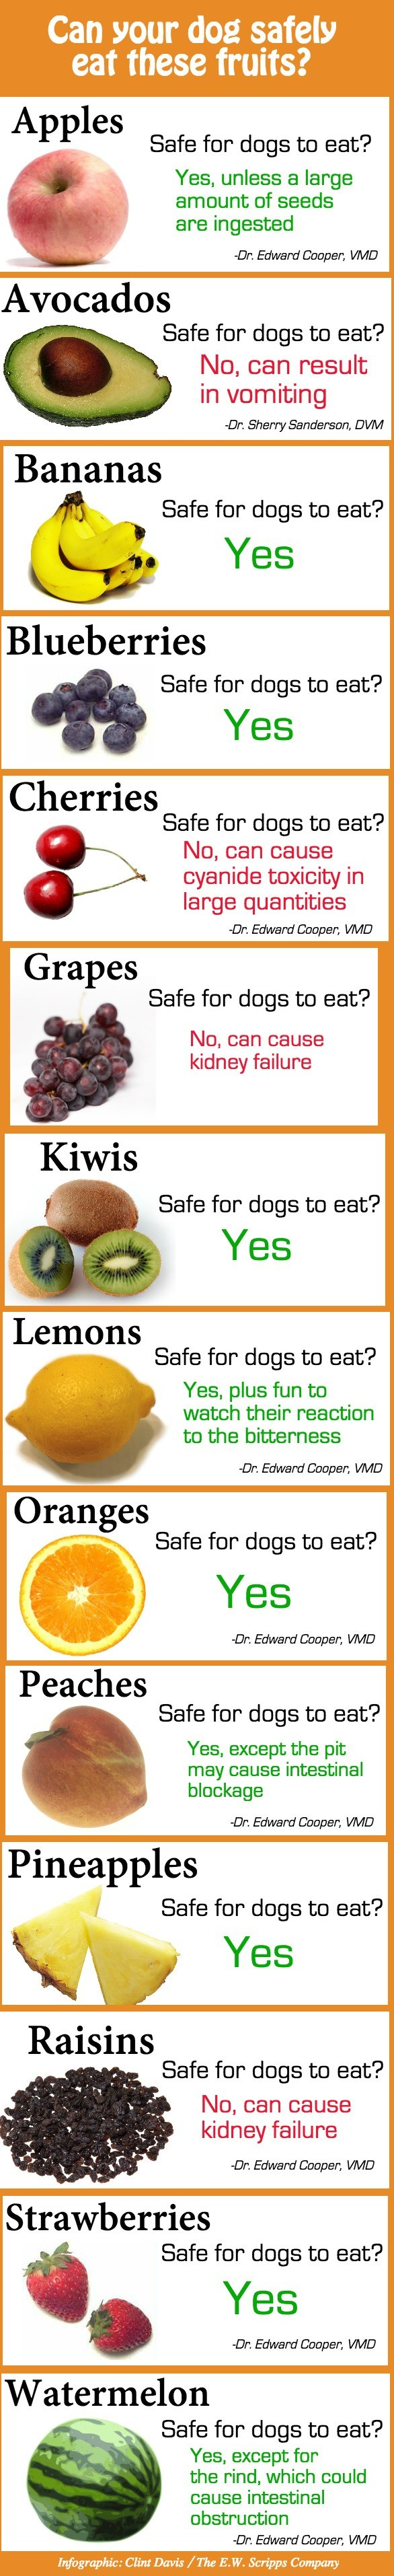 Dogs 'n Fruits. .. Fun fact: if your dog eats a lot of poo, he might have a vitamin deficiency. Feed him bananas and see if he stops eating poo